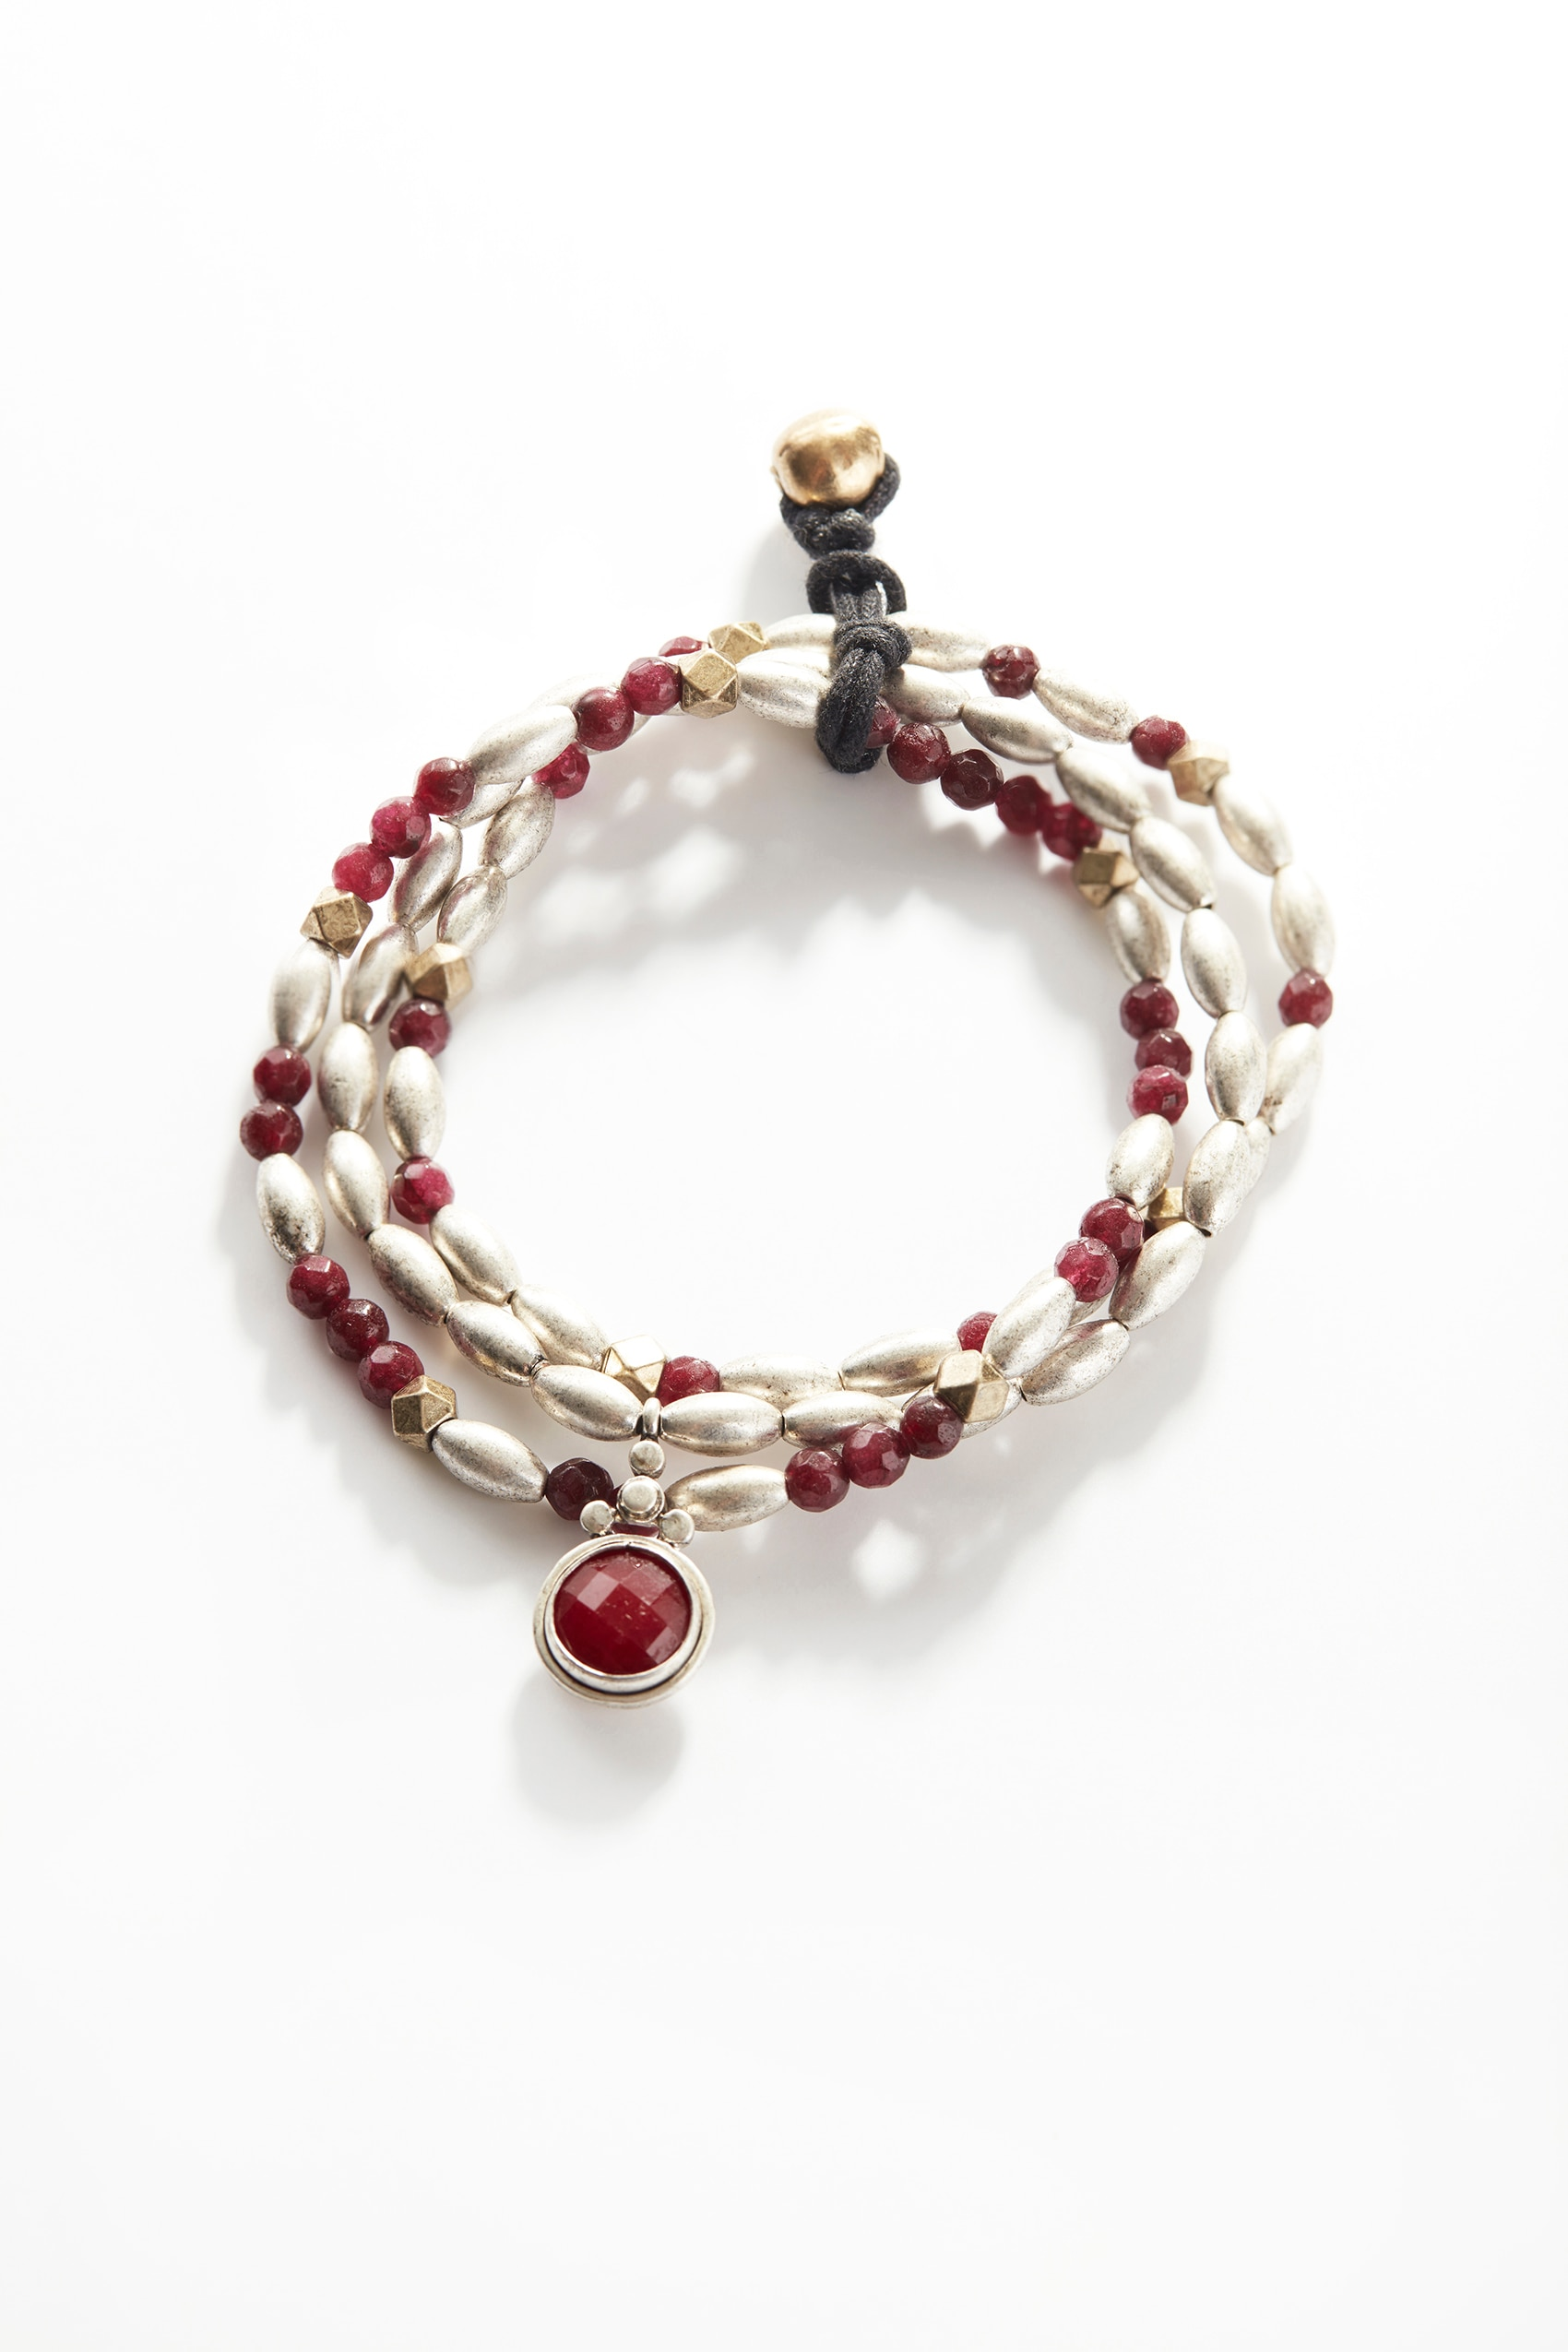 Bordeaux beaded bracelet